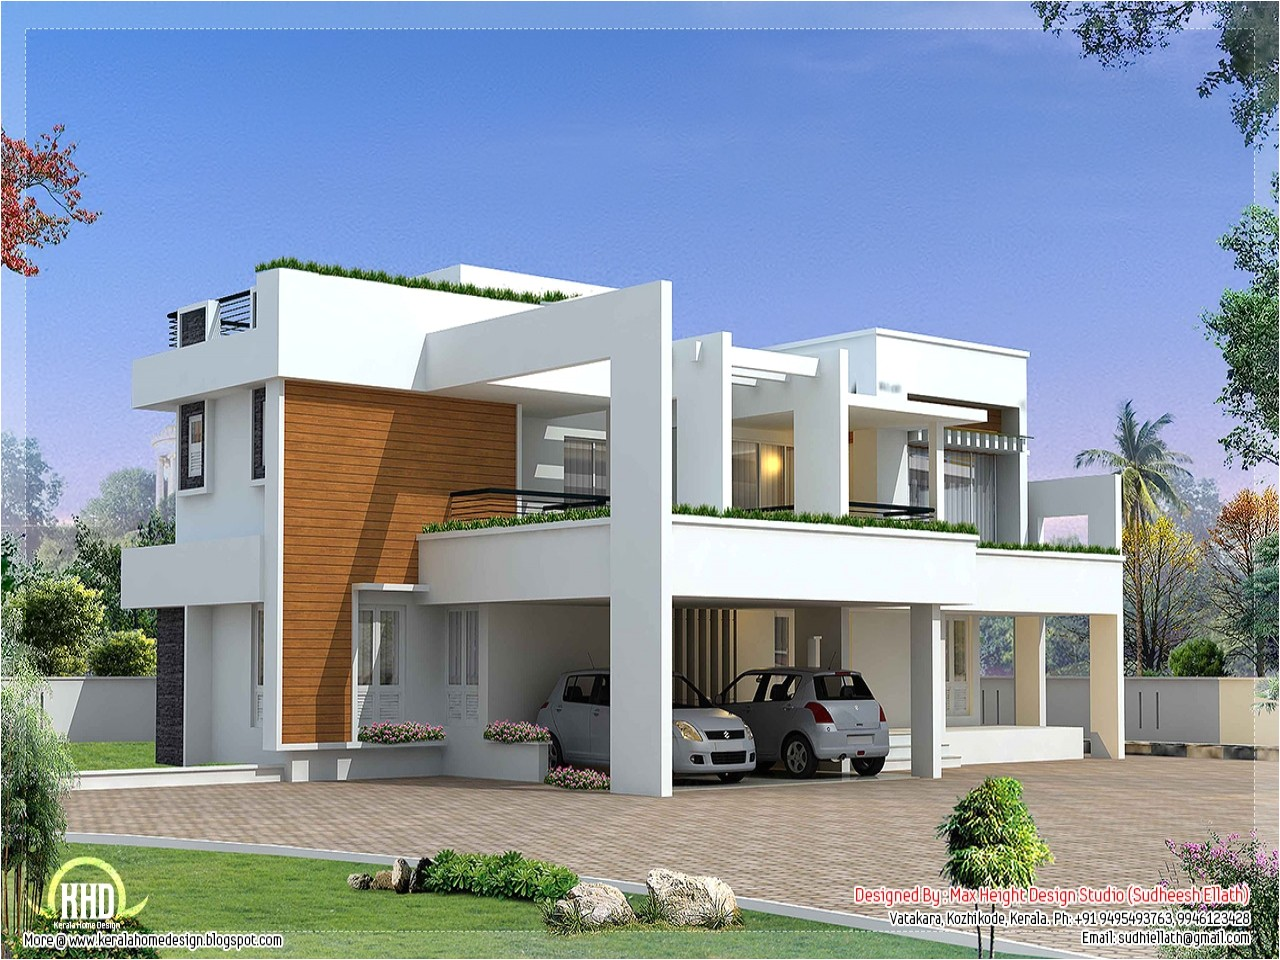 eee47461fa8c1421 modern contemporary house plans designs very modern house plans